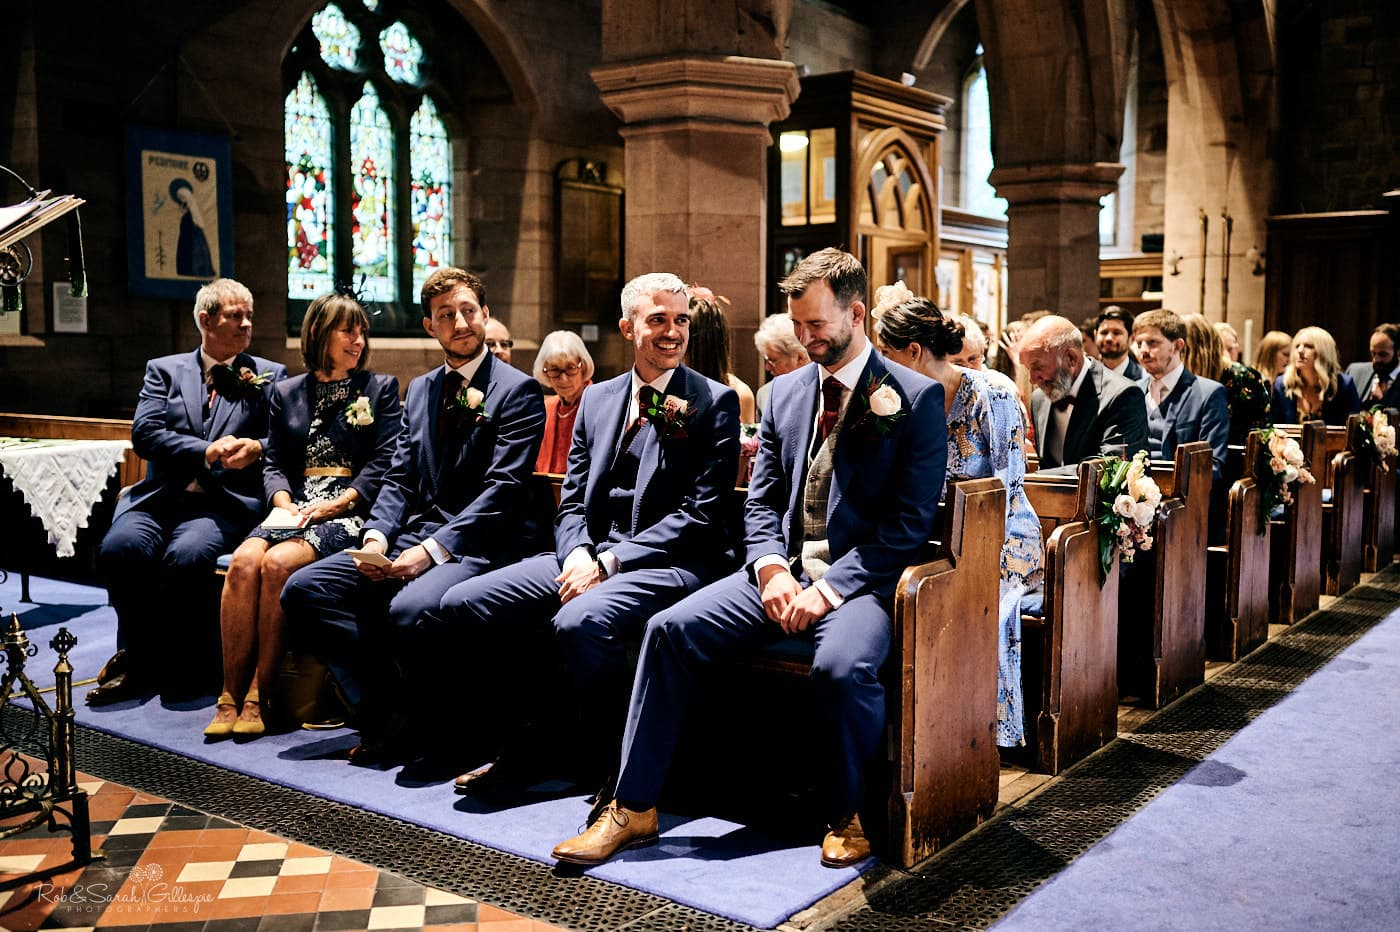 Groom waits for bride at front of church with friends and family around him